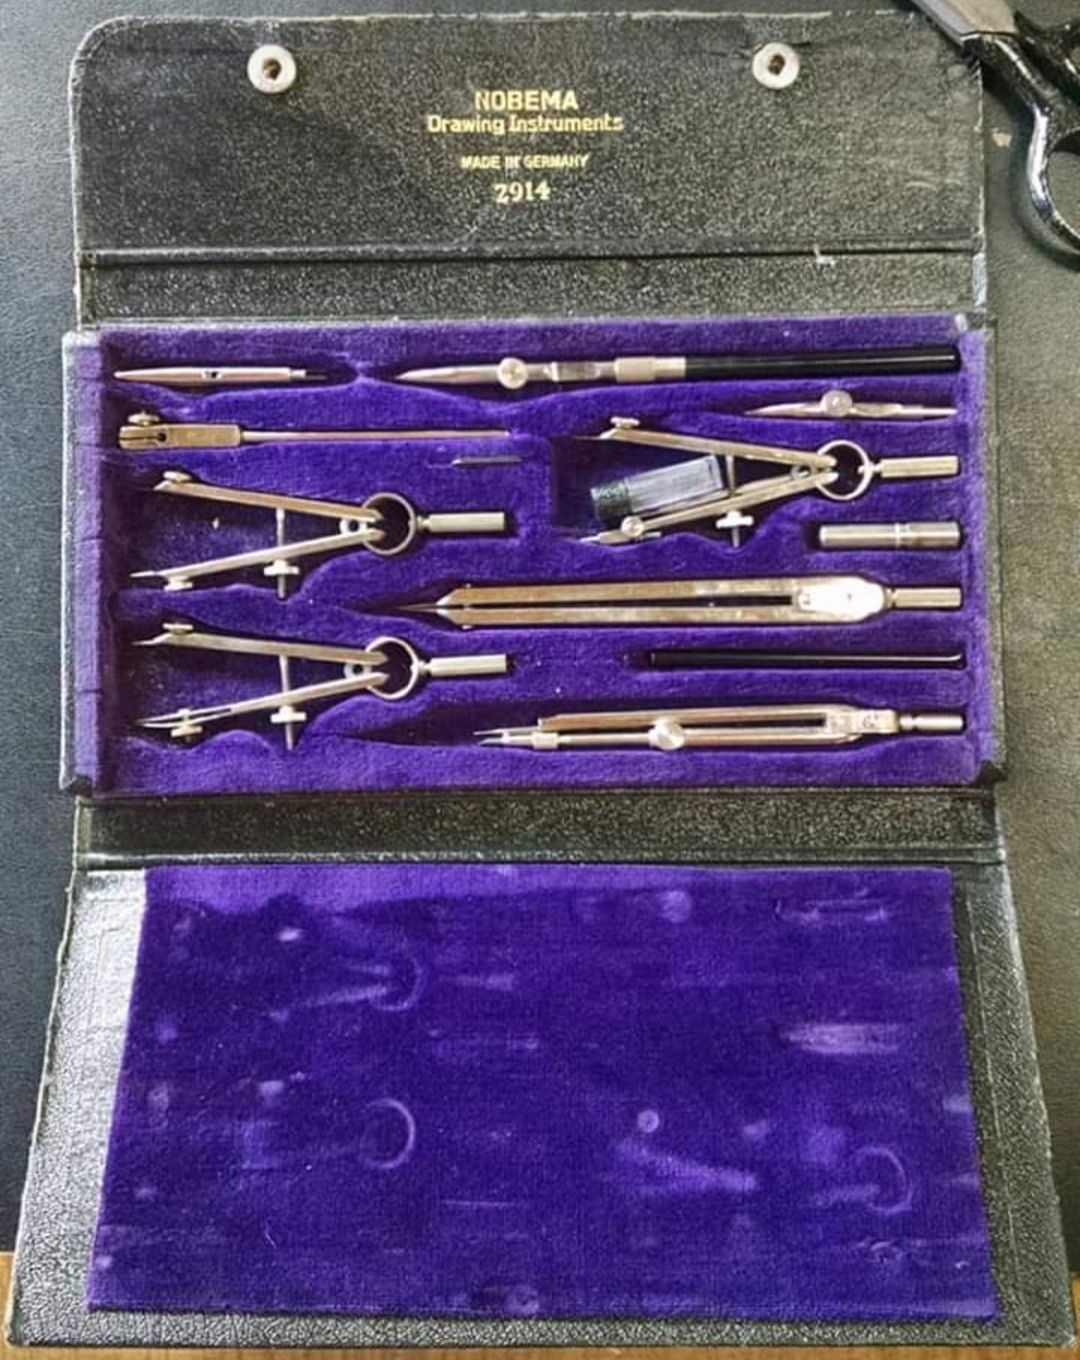 VINTAGE NOBEMA 2914 DRAWING INSTRUMENTS